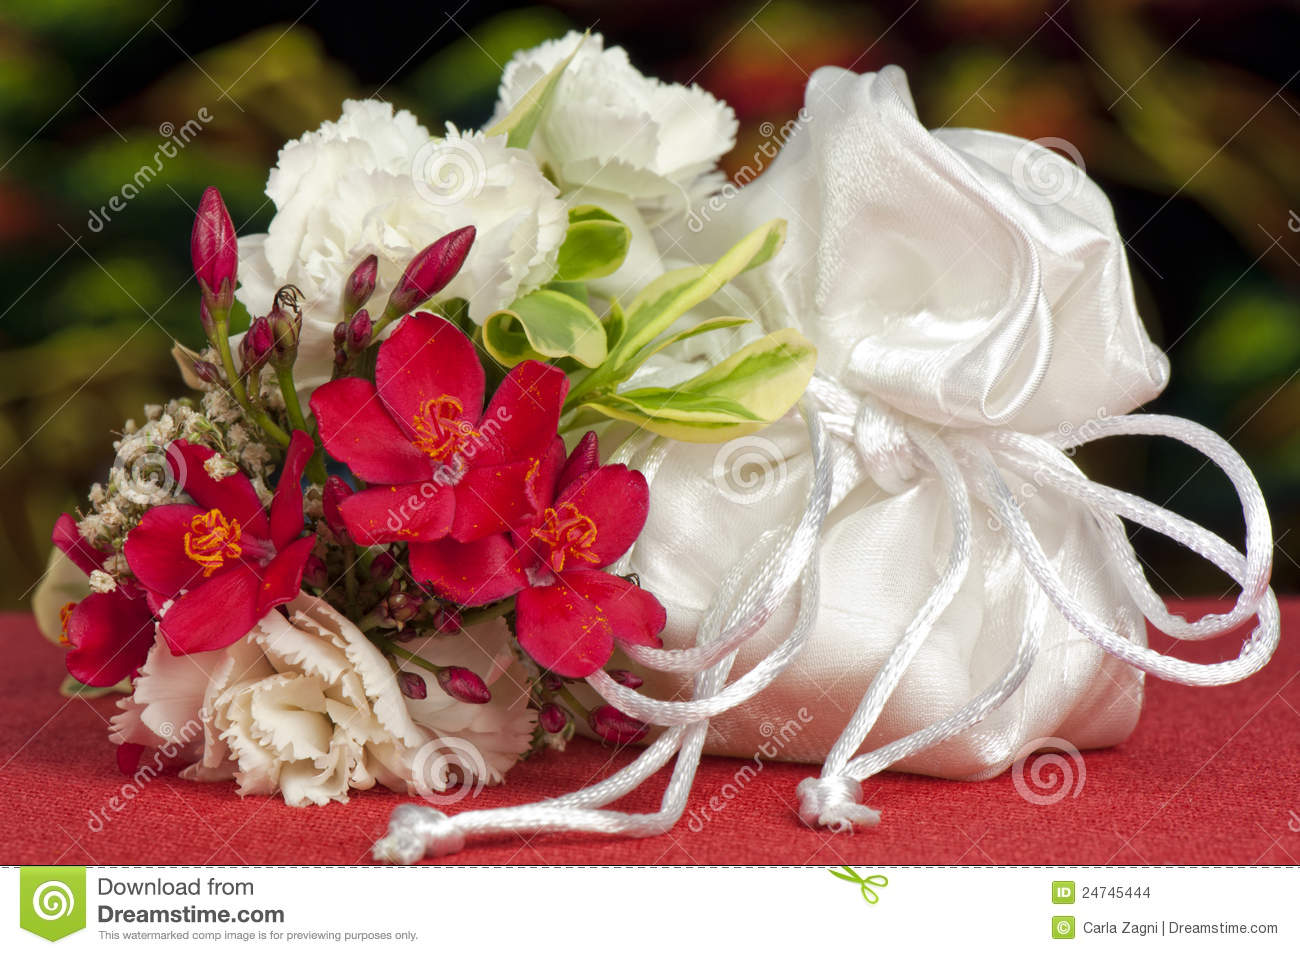 wedding favors flowers wedding favors and flowers stock images image 24745444 9455